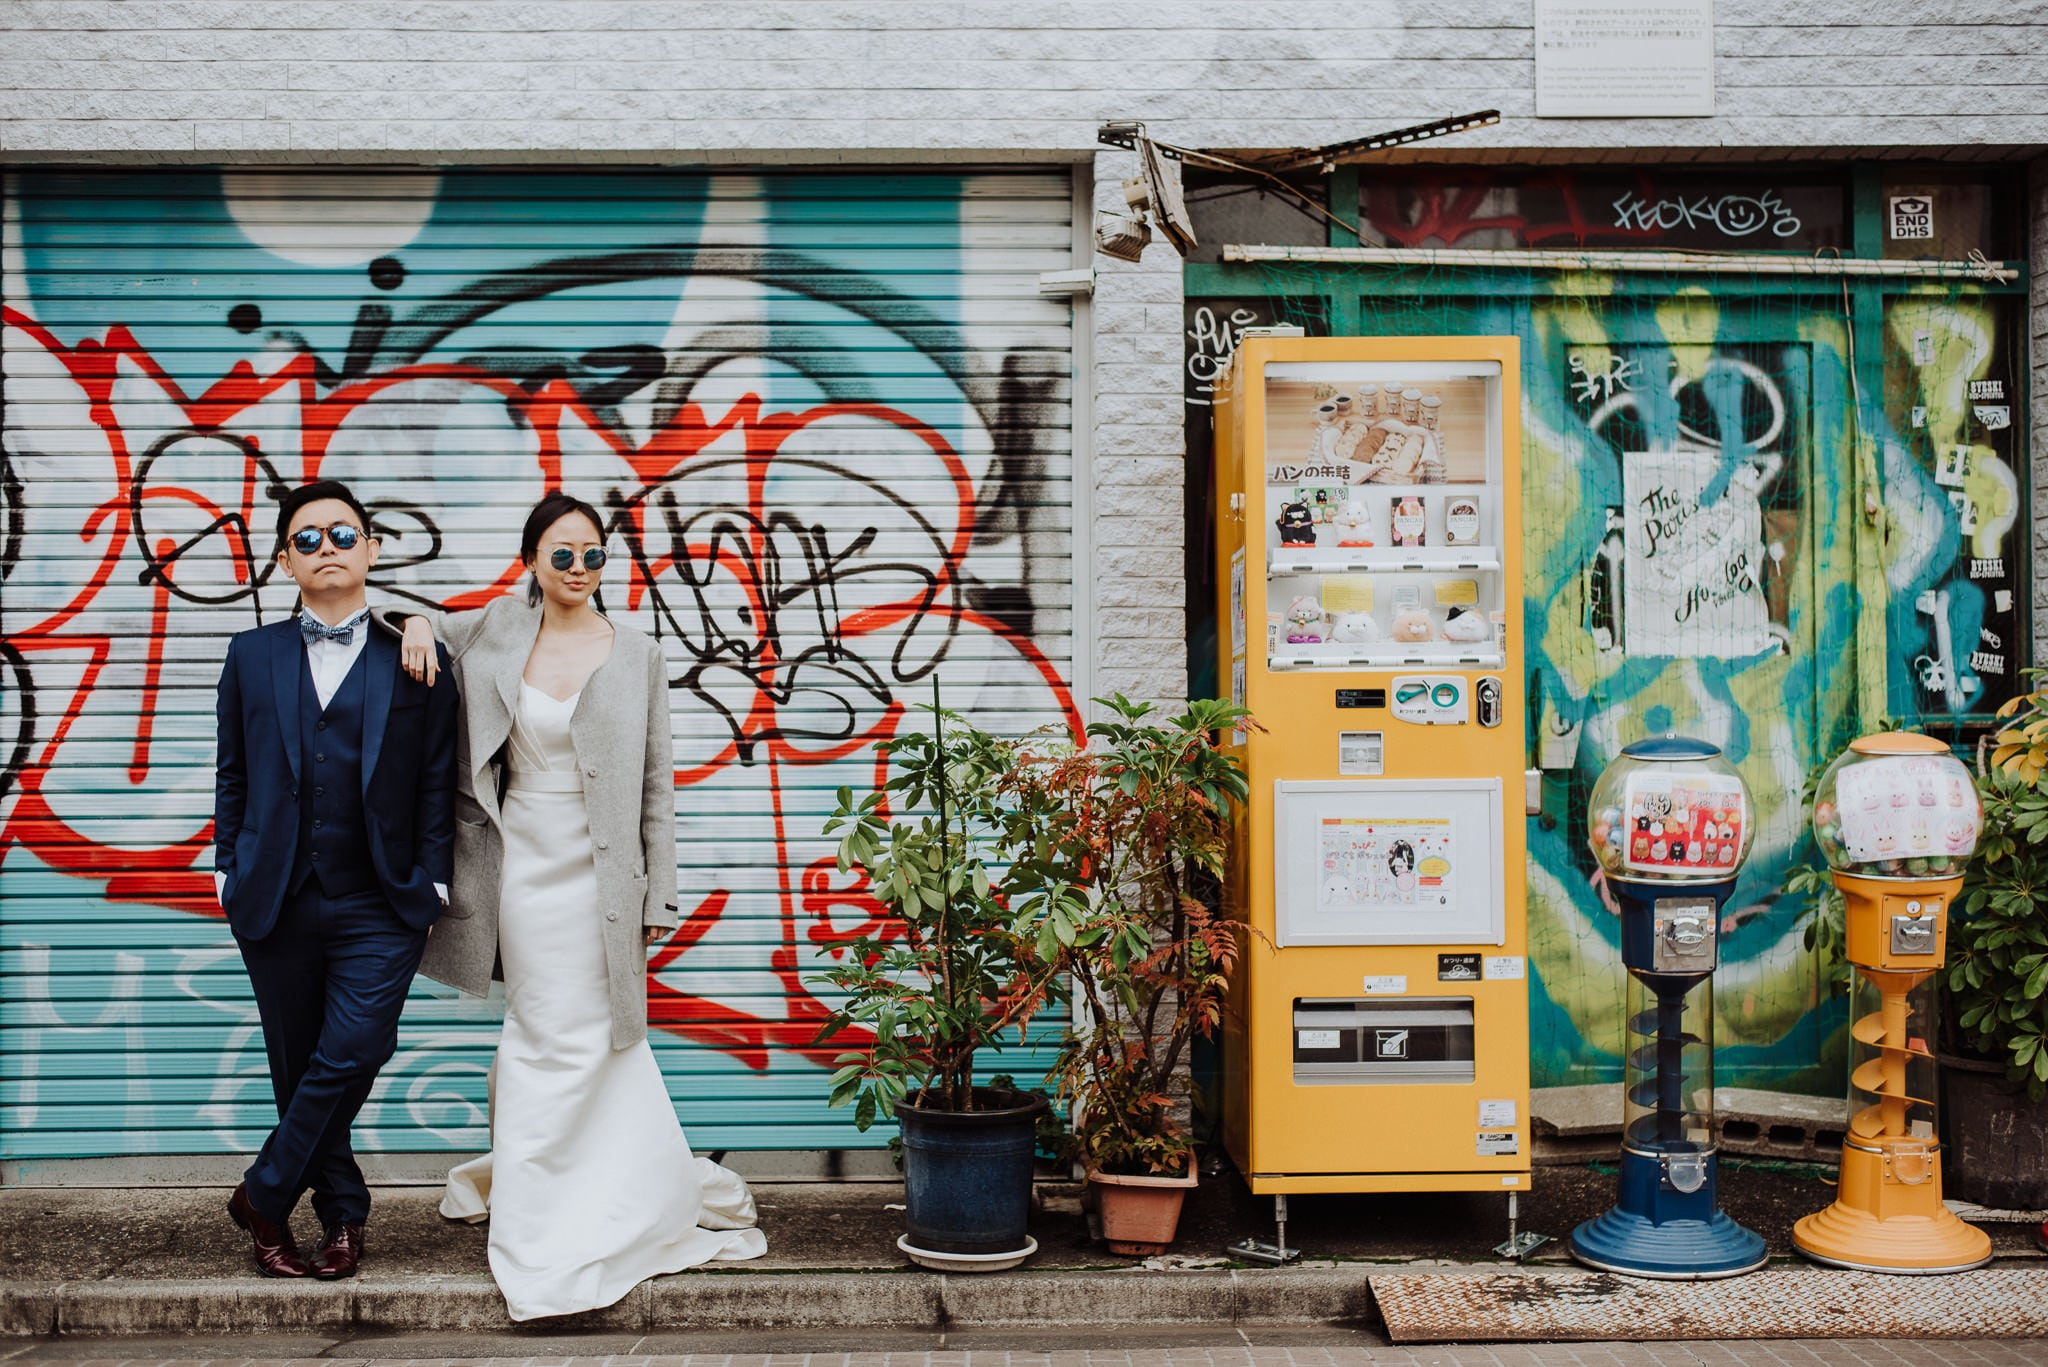 Tokyo Japan Pre Wedding Photography Singapore